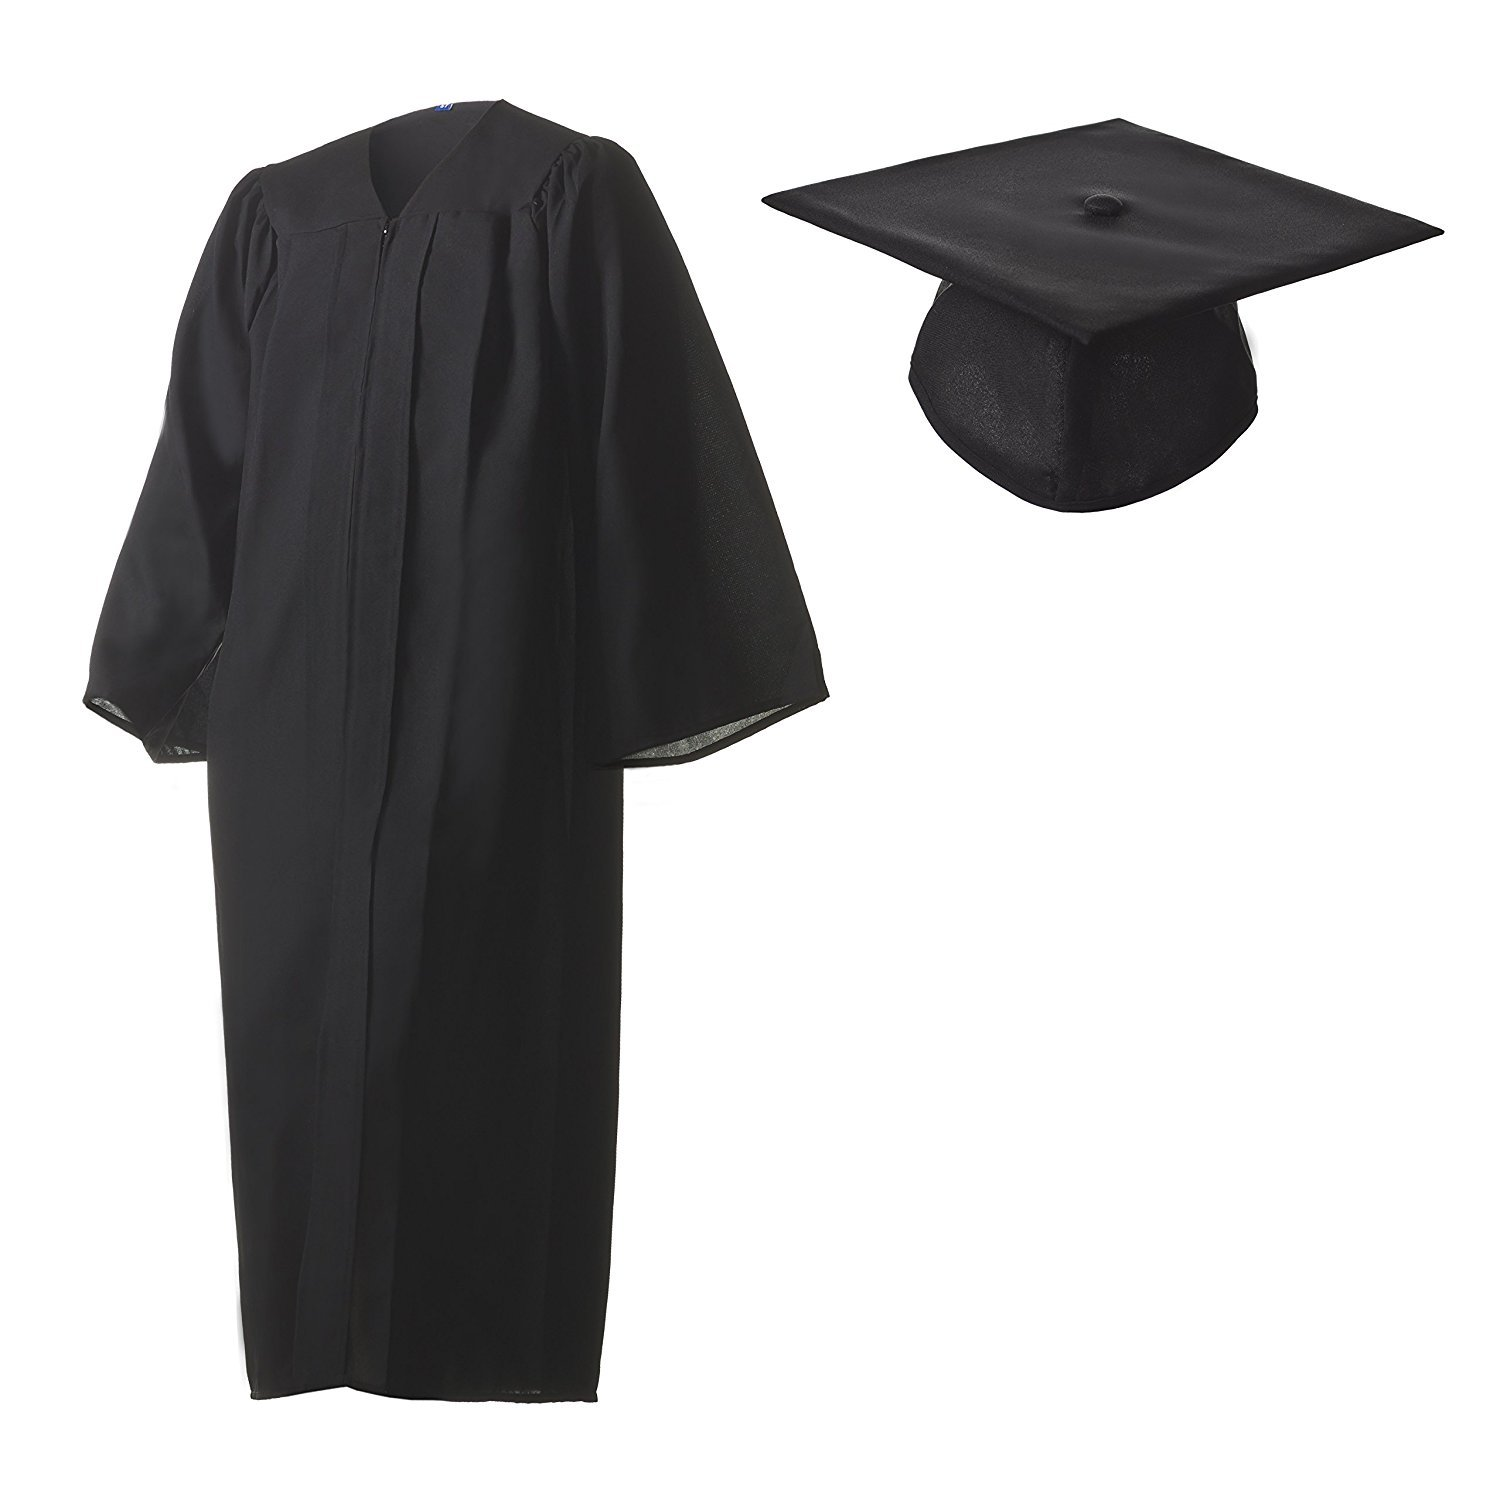 a99a6f475b3 Amazon.com  Graduation Cap and Gown Set Matte Black in Multiple Sizes   Sports   Outdoors